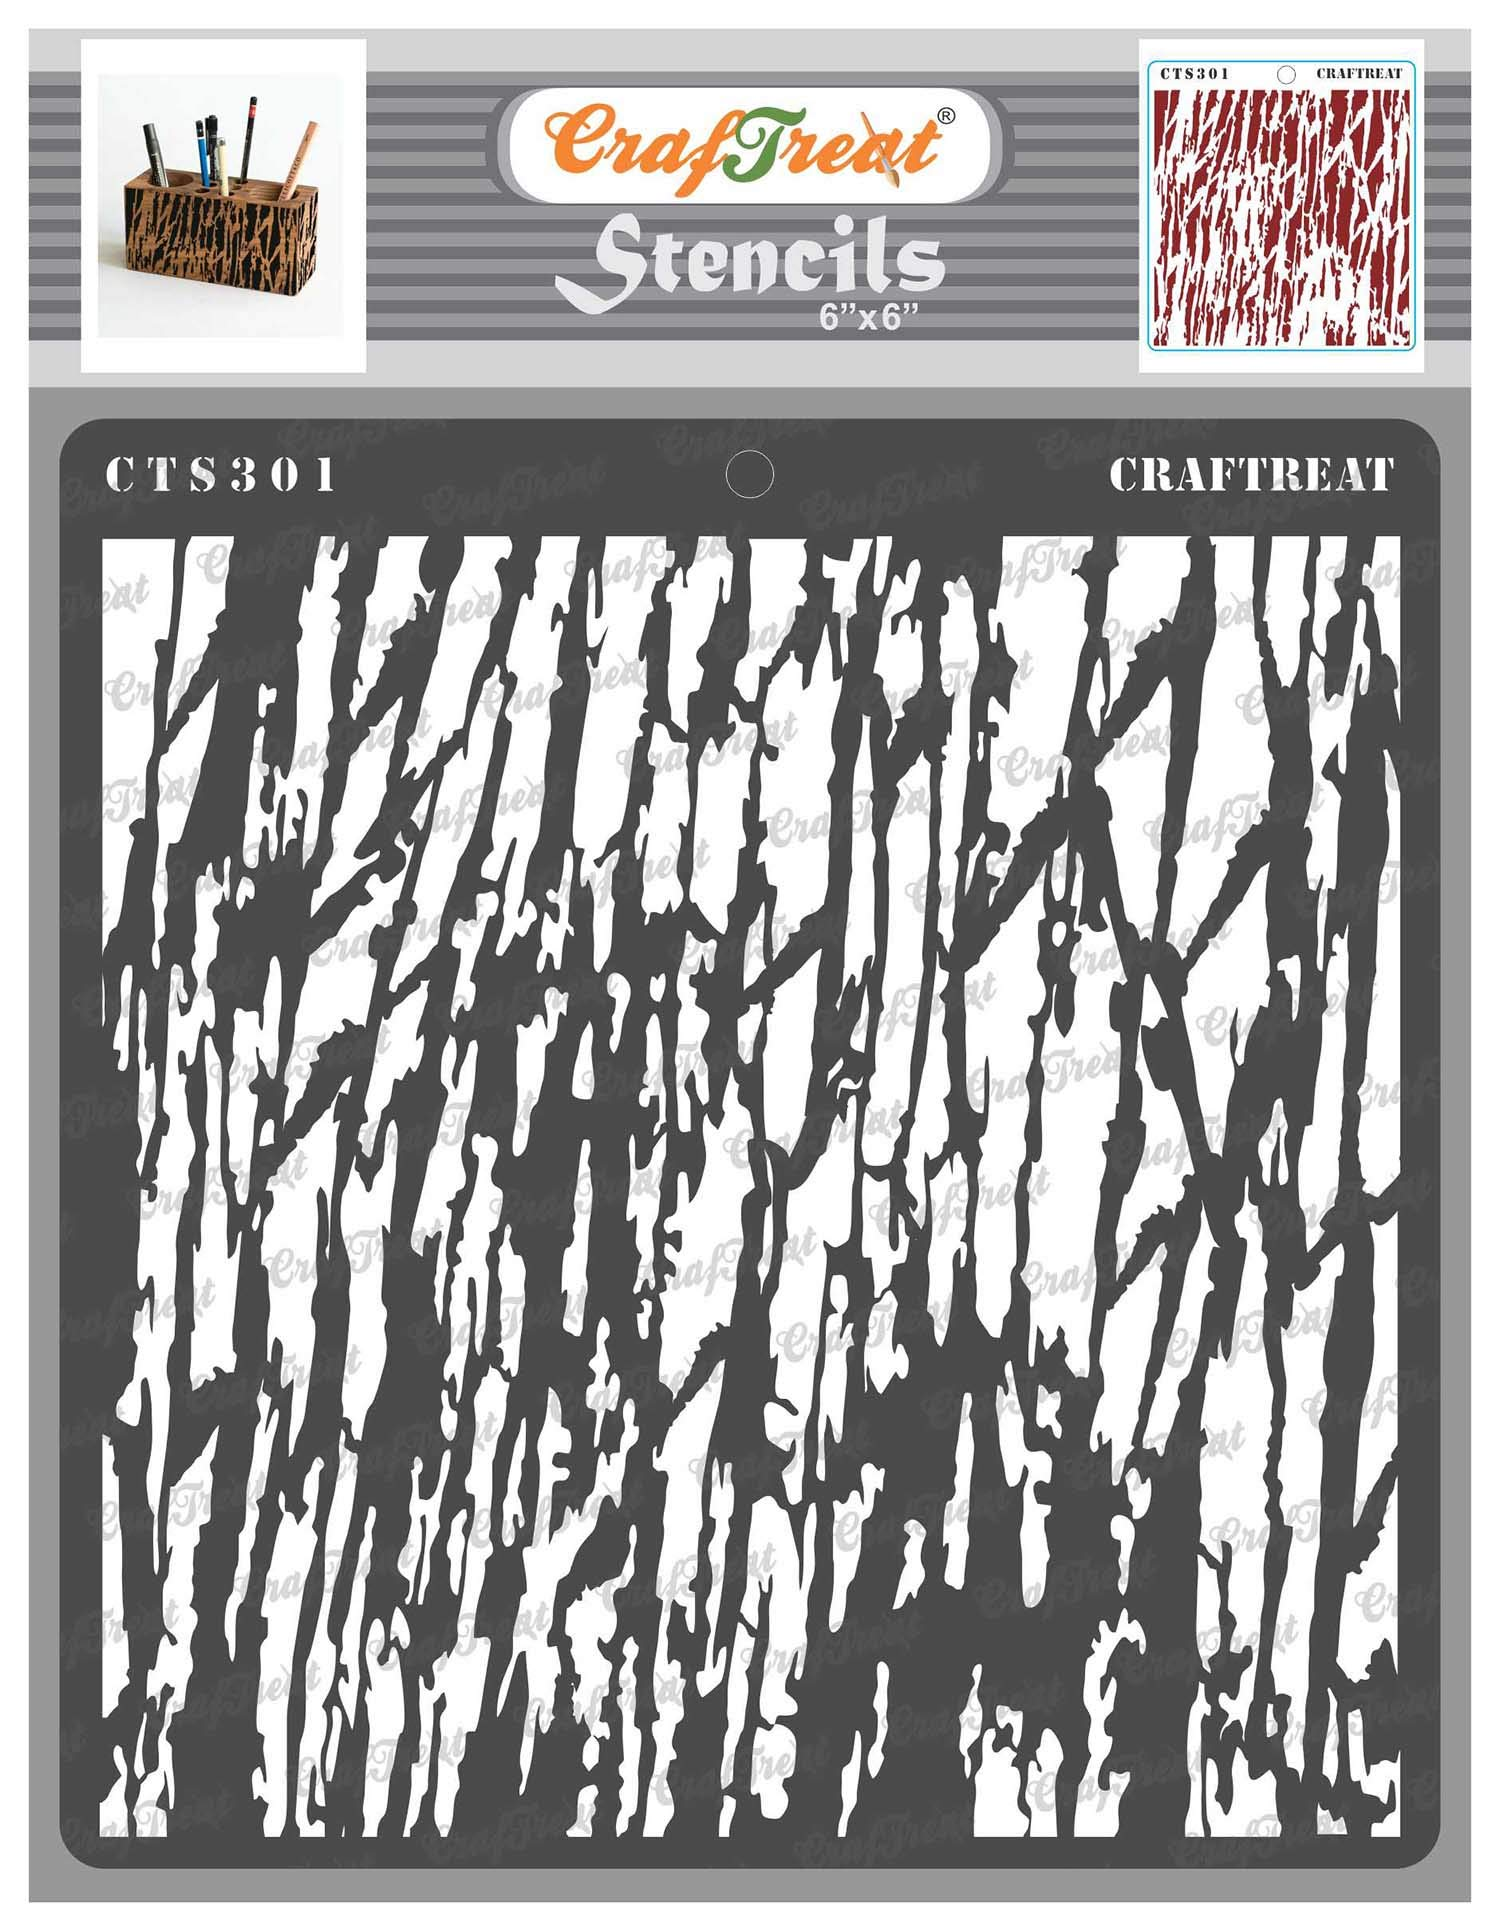 CrafTreat Wood Decor Stencils for Painting on Wood, Canvas, Paper, Fabric, Floor, Wall and Tile - Tree Bark - 6x6 Inches - Reusable DIY Art and Craft Stencils - Tree Bark Stencil